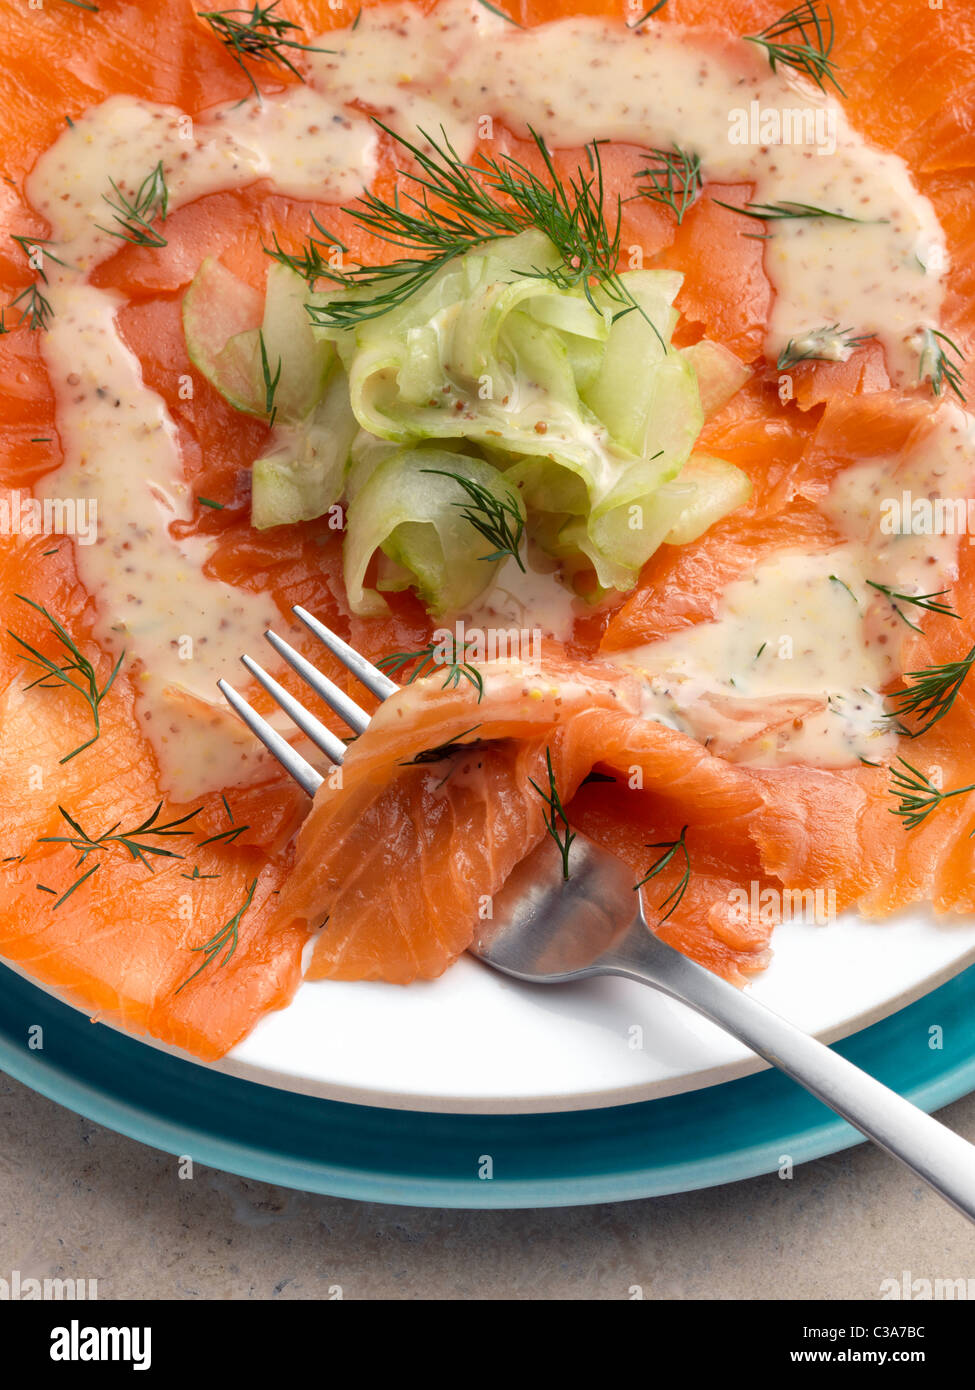 Gravadlax smoked salmon with dill cucumber mustard dressing Marco Pierre White recipe - Stock Image